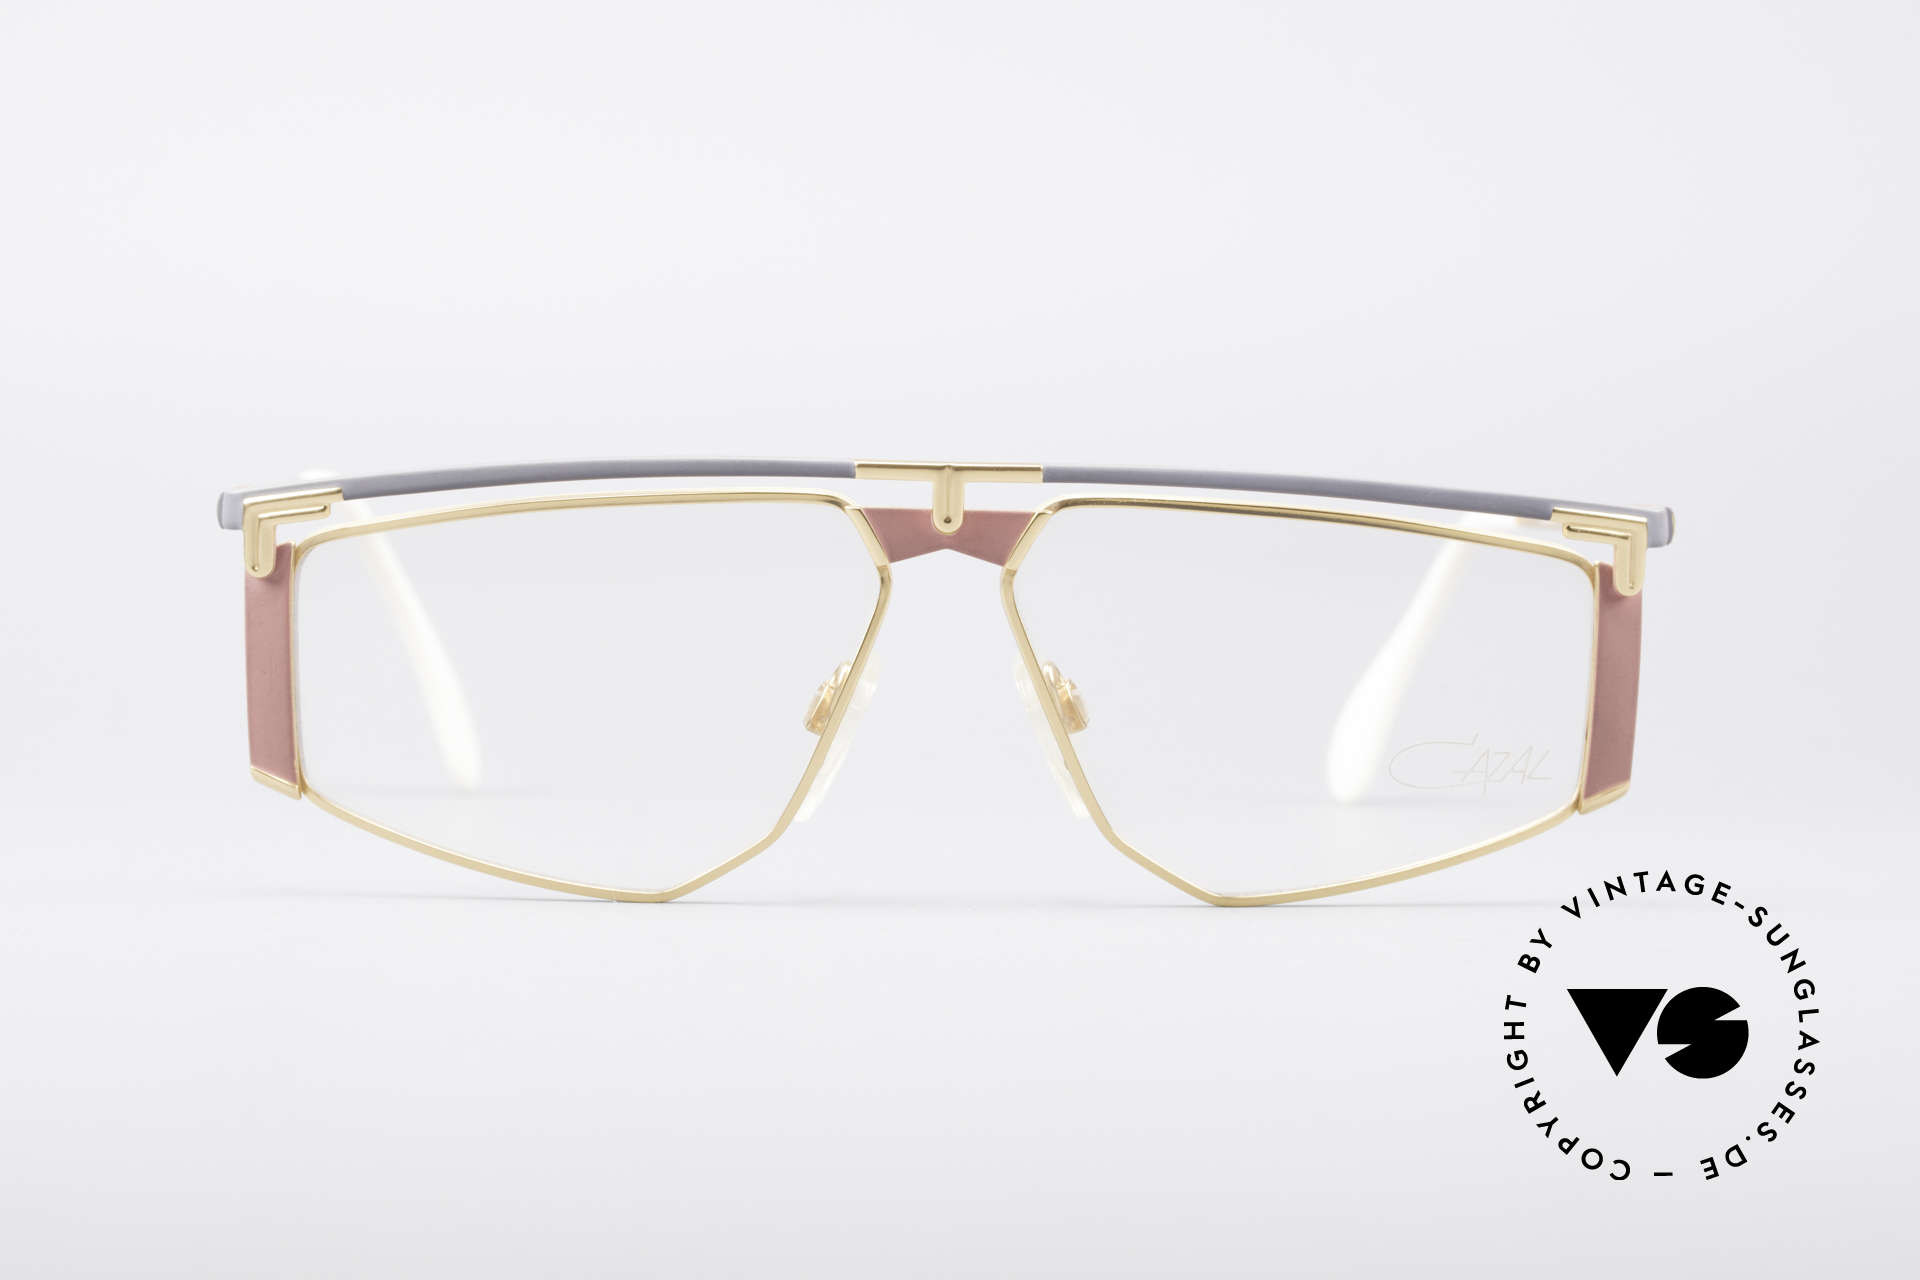 Cazal 235 Rare Titanium Vintage Frame, 1. class wearing comfort thanks to lightweight material, Made for Men and Women